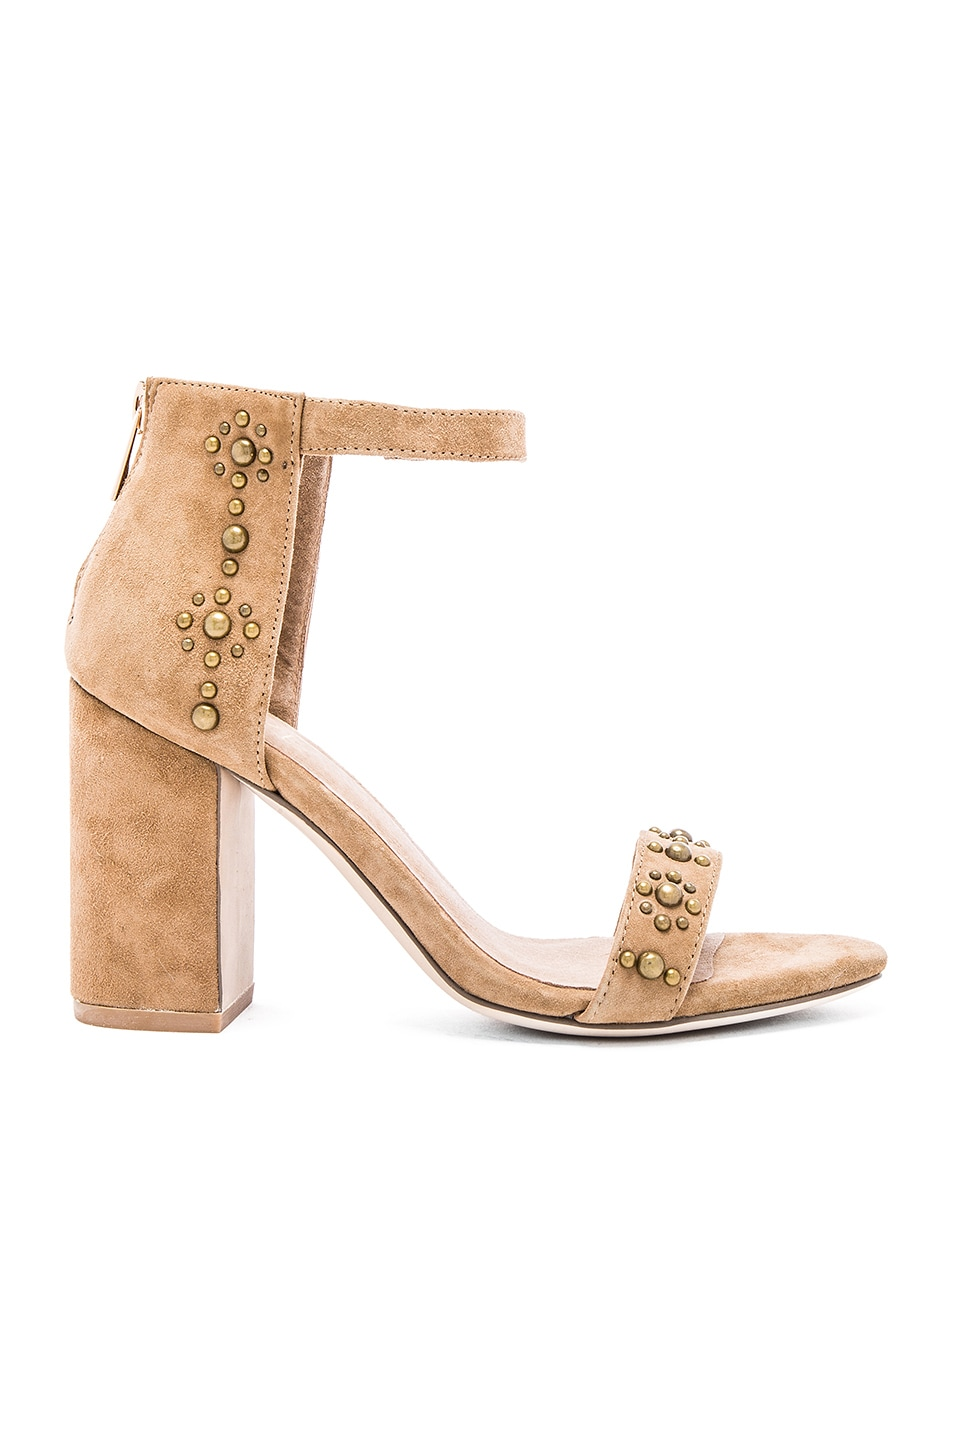 RAYE Lois Heel in Tan